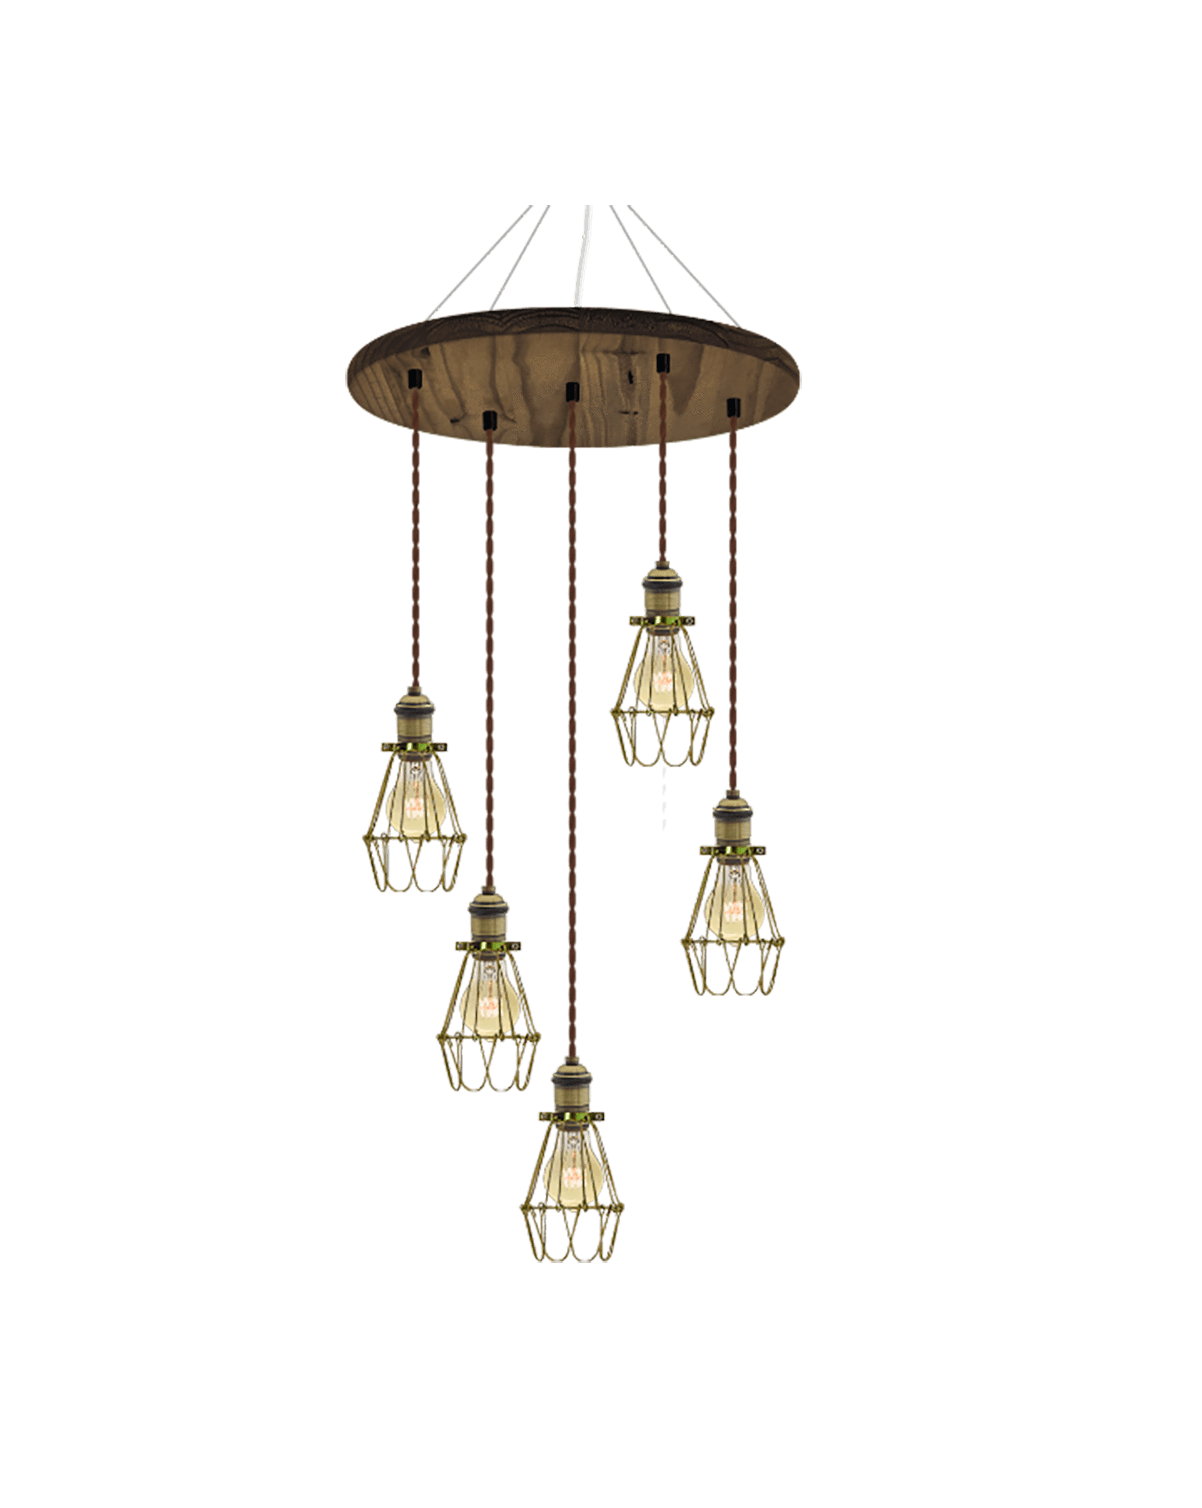 "18"" Round Wood Chandelier: Walnut, Brown, and Brass Cages Hangout Lighting"